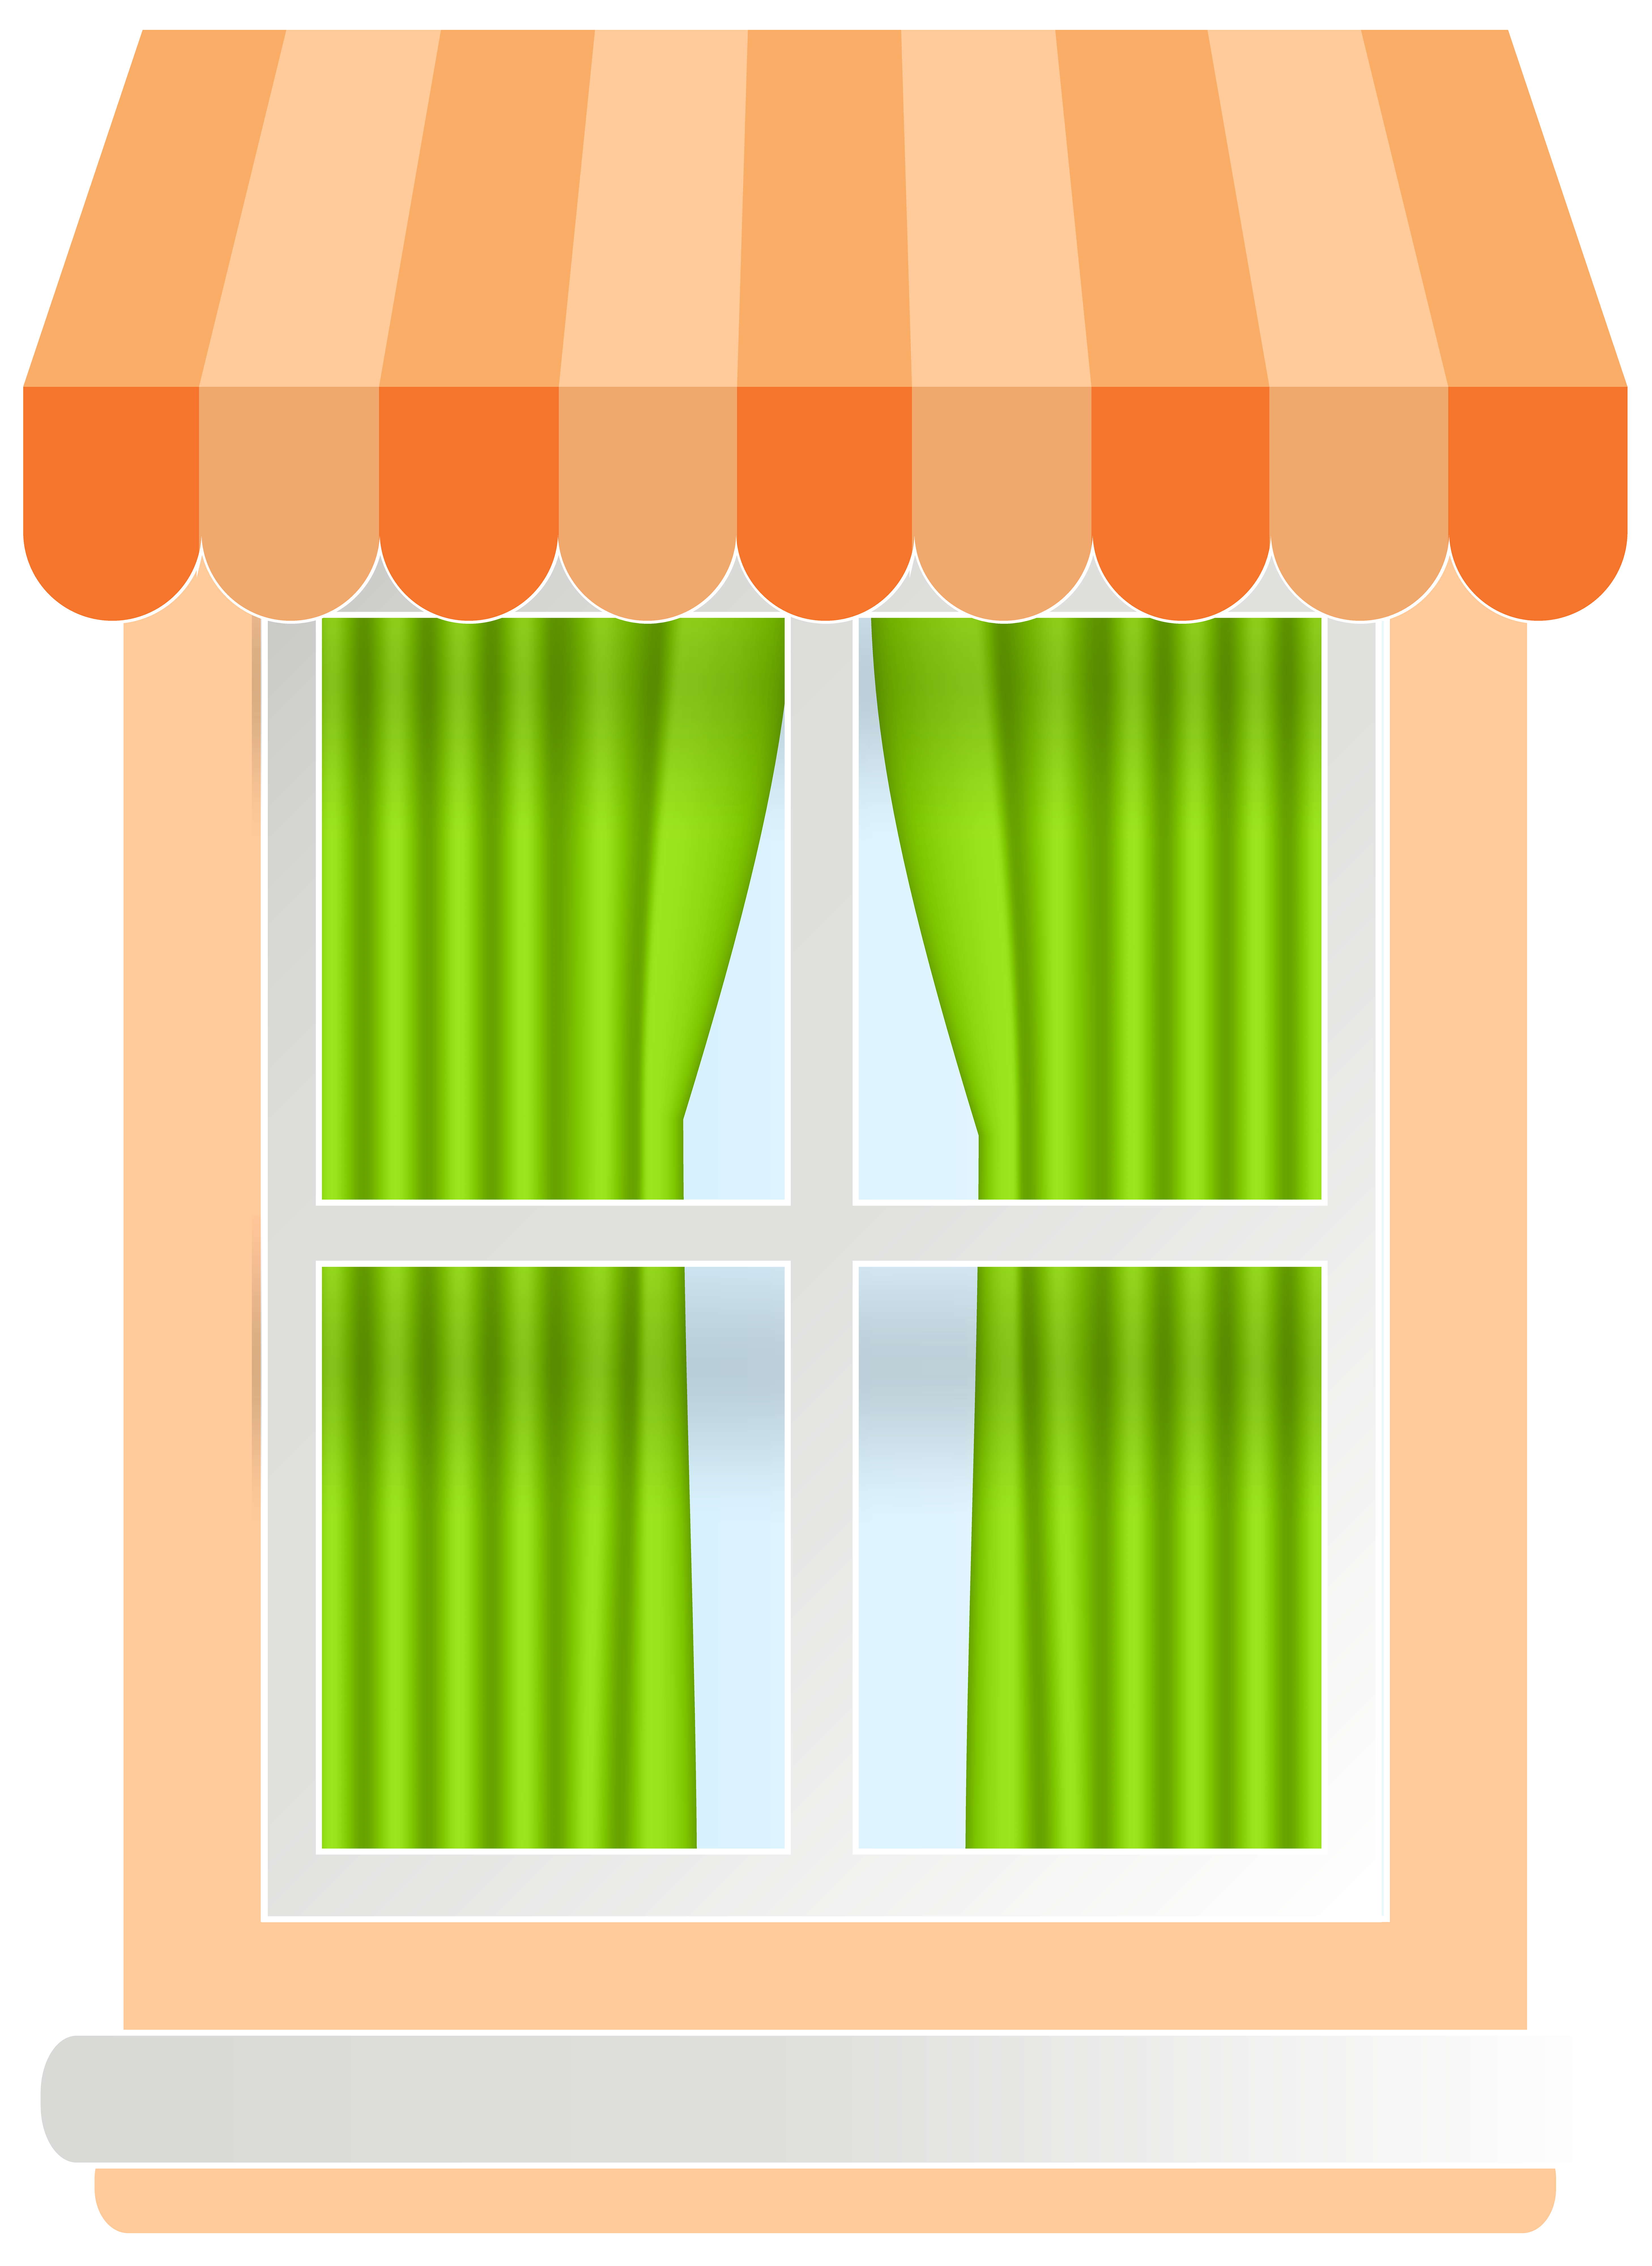 Curtains clipart small window. Orange png clip art